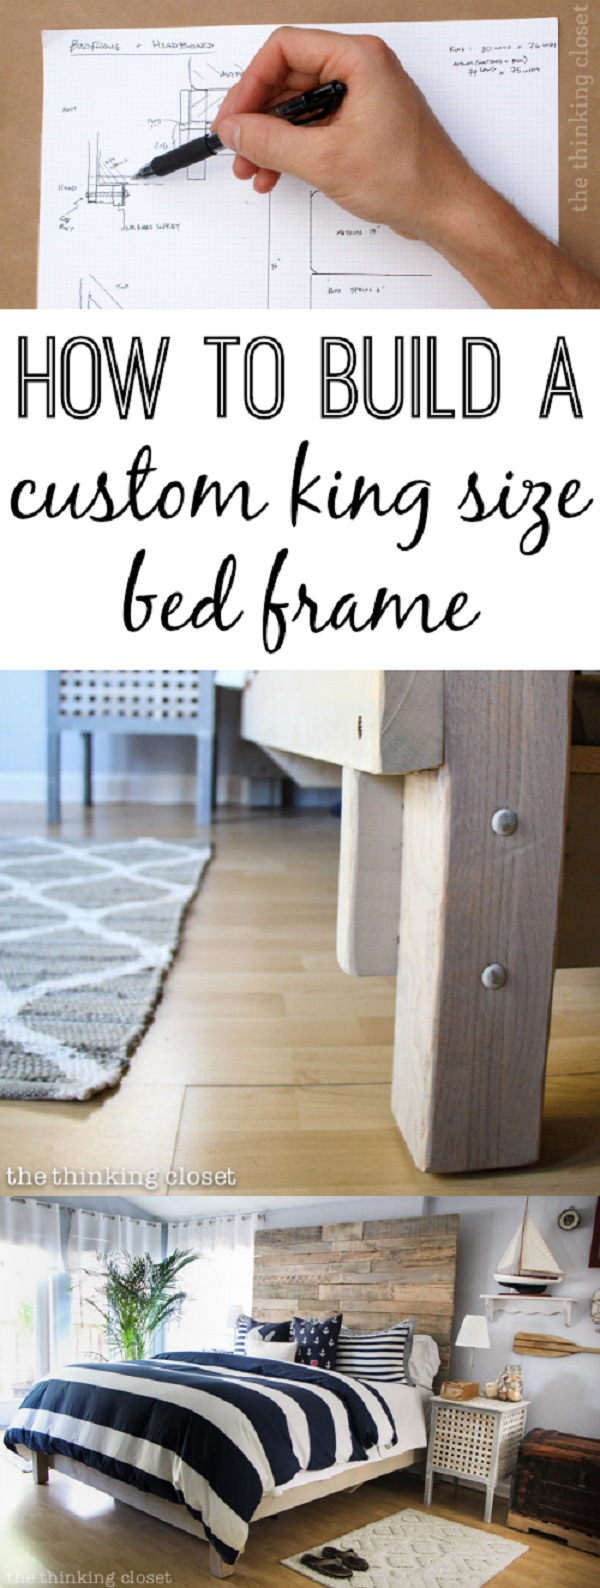 Check out the tutorial on how to make a #DIY custom king size bed frame. Looks easy enough! #BedroomIdeas #HomeDecorIdeas @istandarddesign